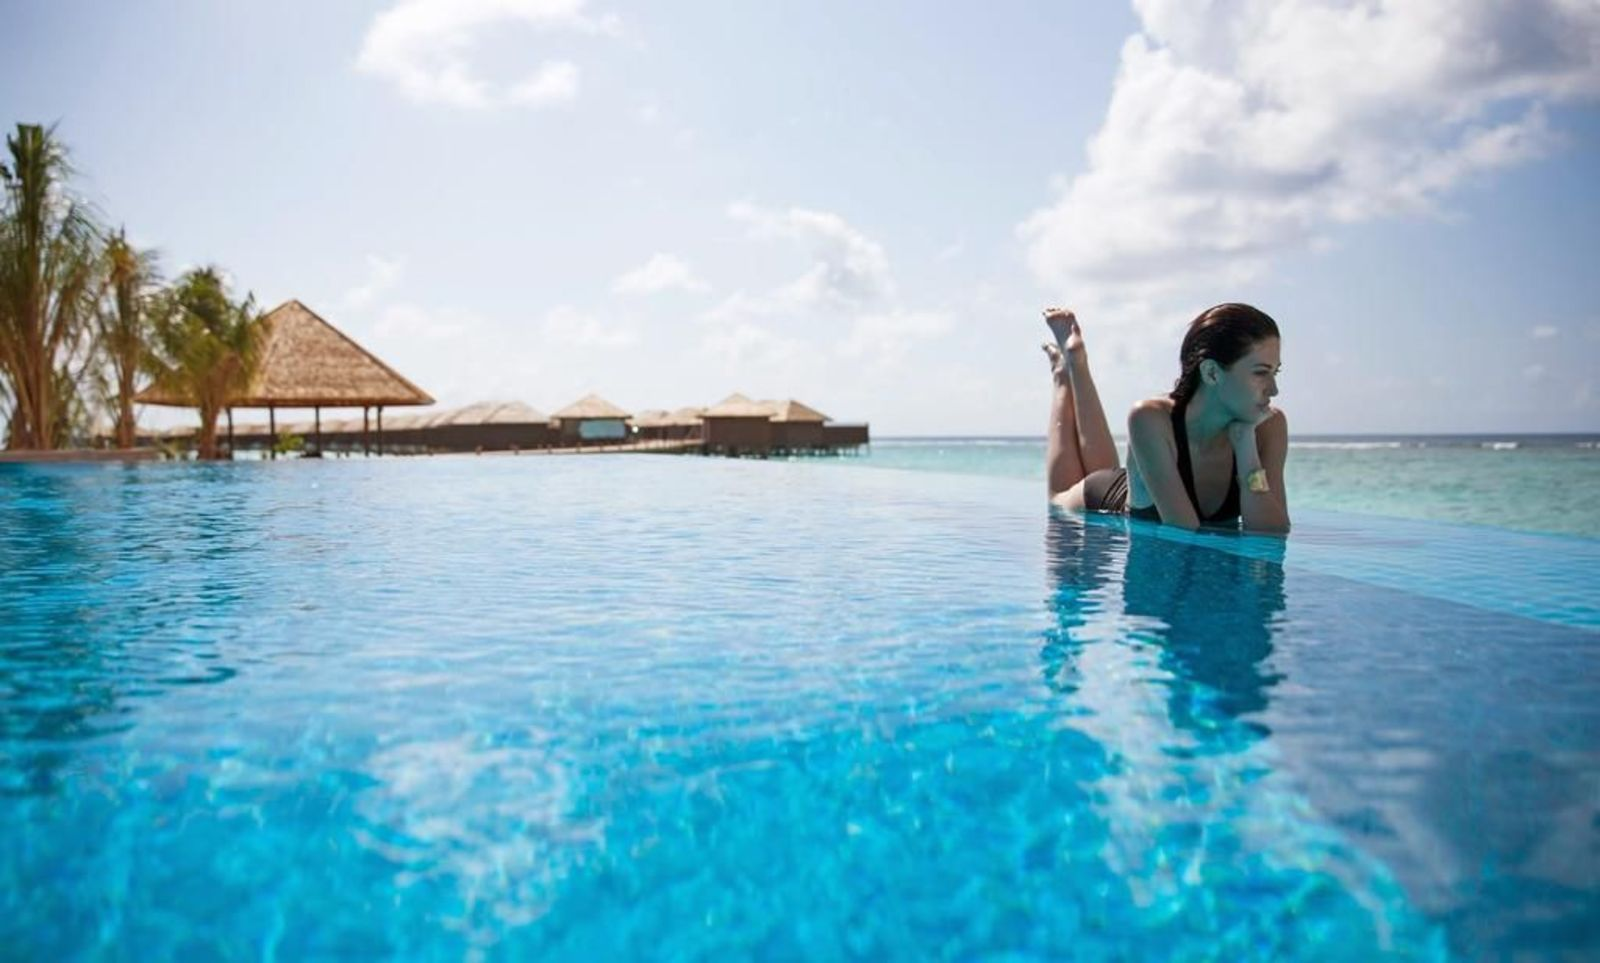 Impressions and Other Assets/hideaway_beach_resort_maldives_whsgch